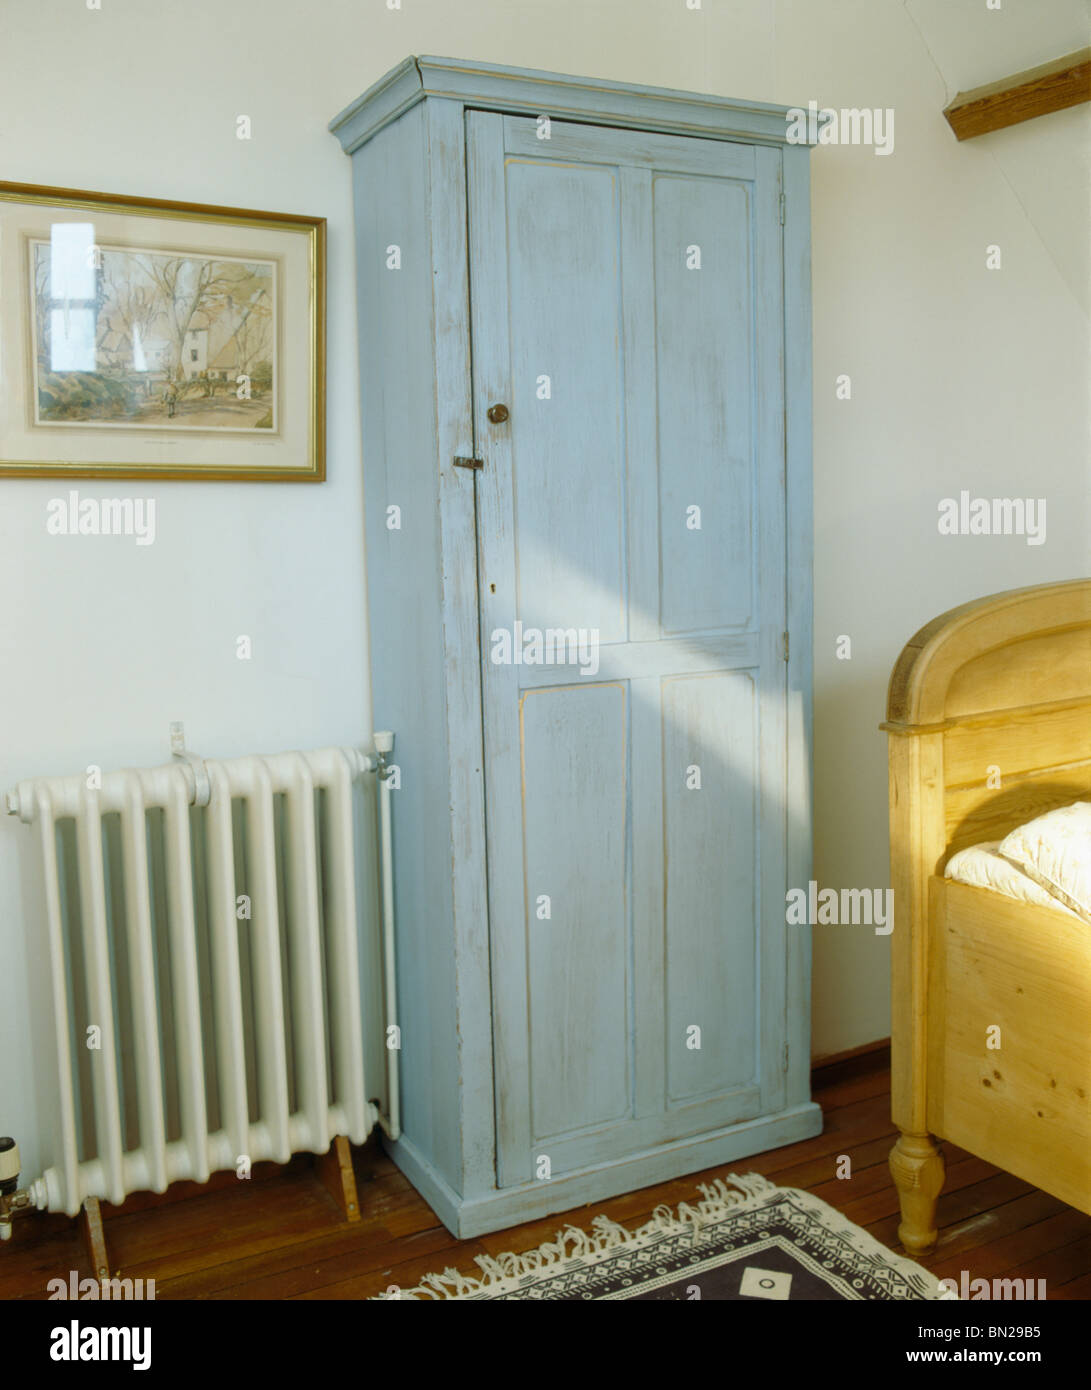 Painted Blue Wardrobe Beside Radiator In Small Country Bedroom Stock Photo Alamy